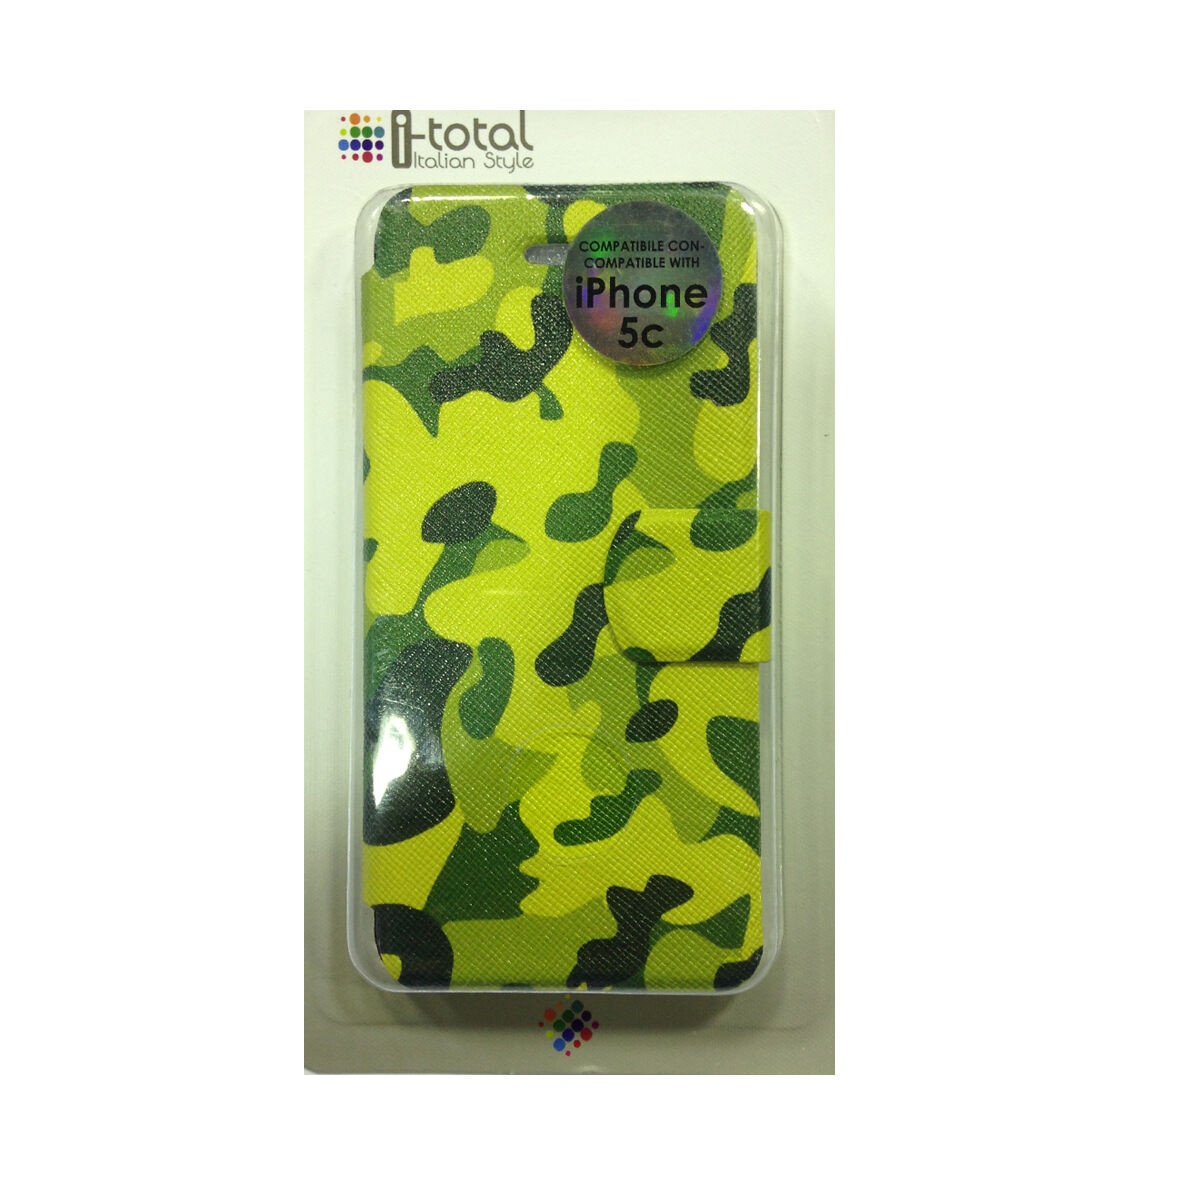 COVER mascherina iphone 5C camouflage verde a portafoglio in eco-pelle I-TOTAL